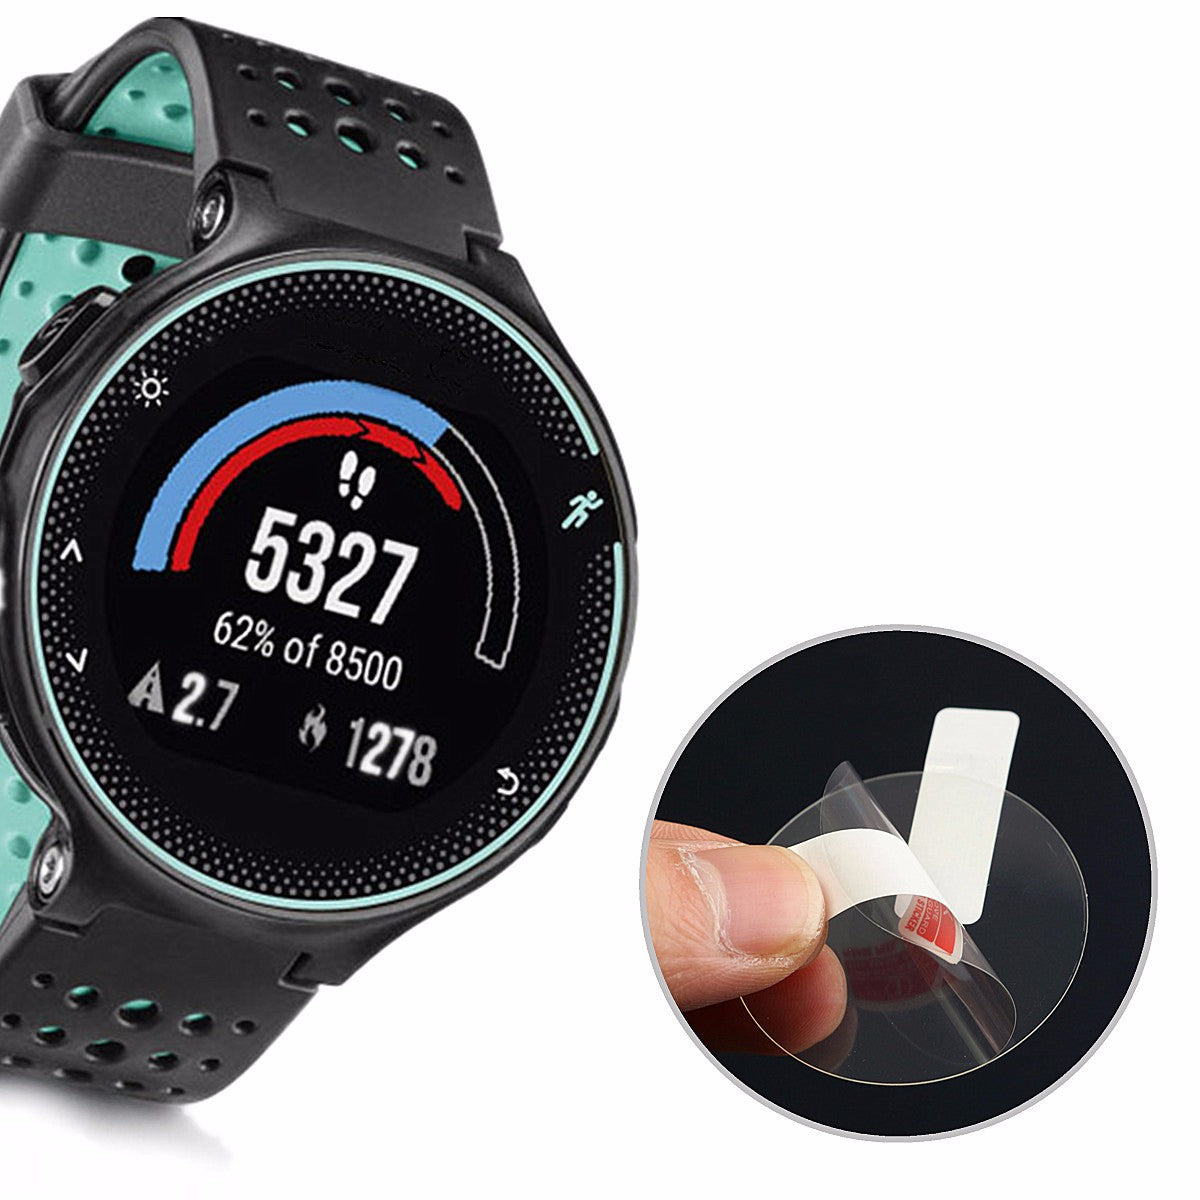 Garmin Forerunner 235 Anti-Scratch Clear Screen Protector Film Shield For Garmin Forerunner 235 Watch